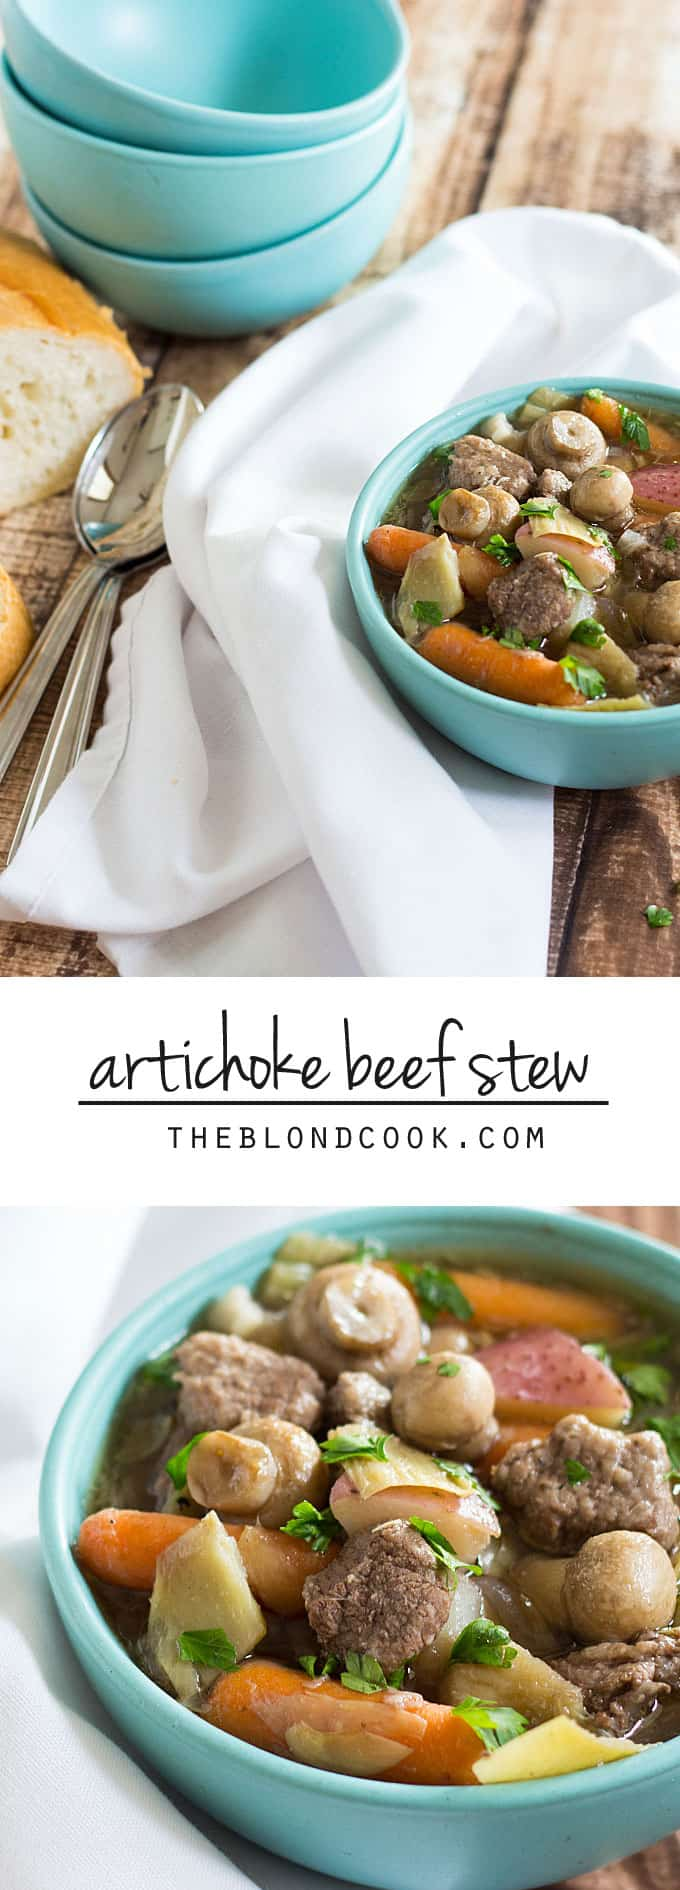 Artichoke Beef Stew - A hearty and comforting beef stew full of artichokes, carrots, potatoes and mushrooms.